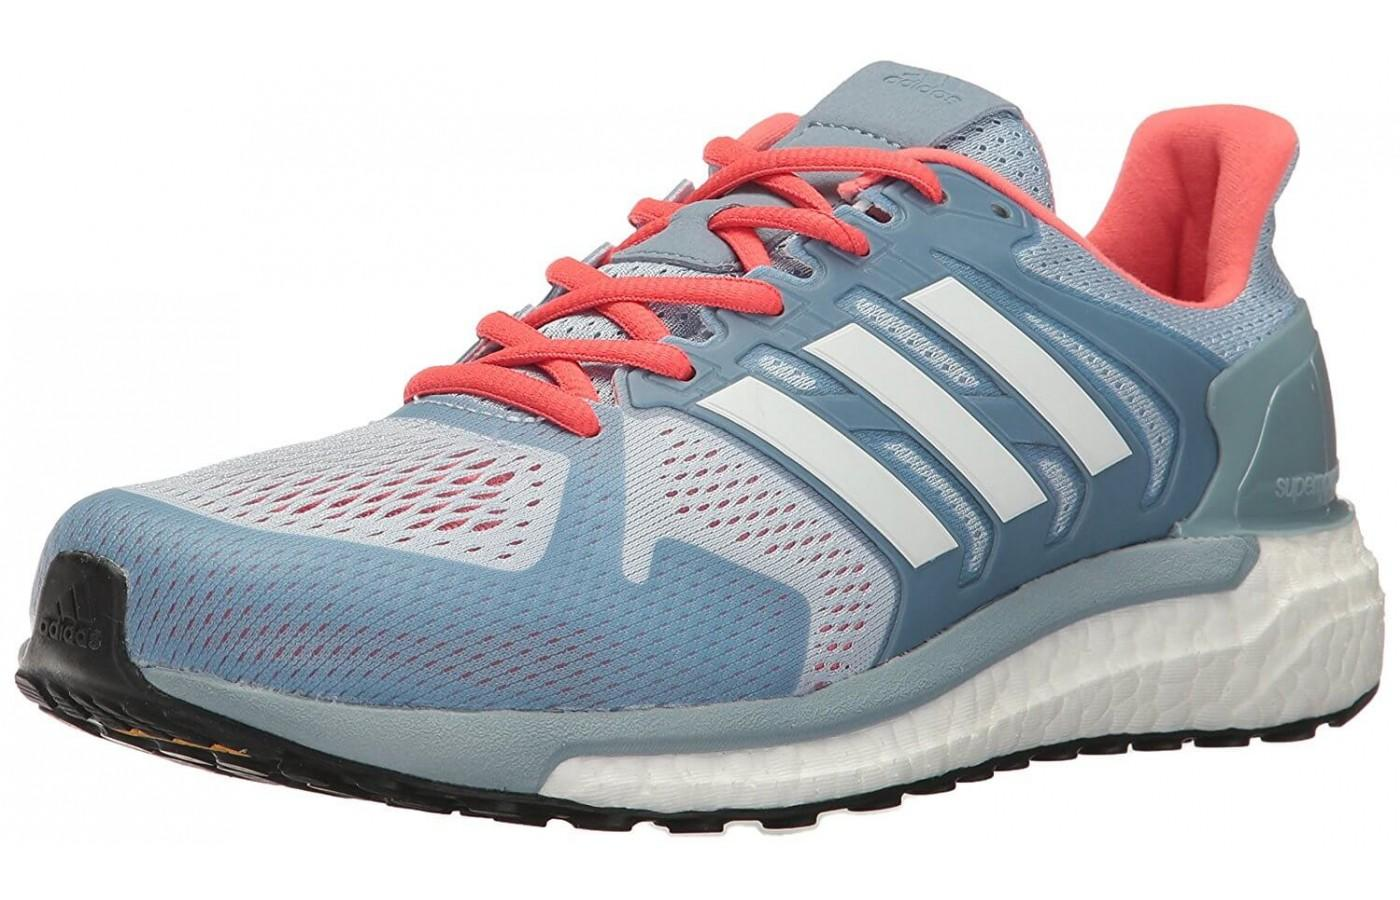 best service 7da5e e6517 The Adidas Supernova ST is a stability shoe that represents a redesign of  the Sequence 9 ...